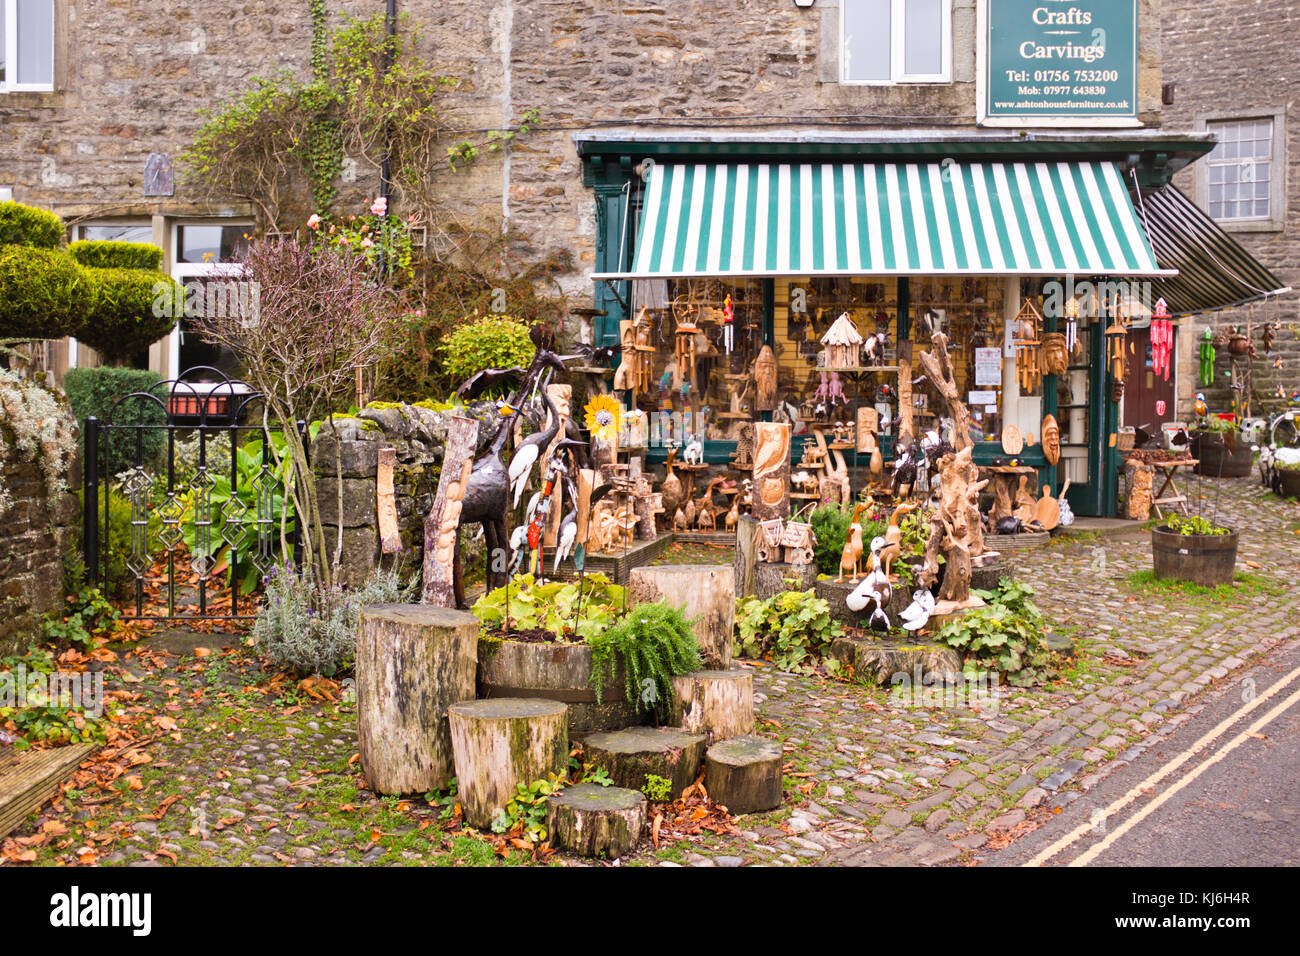 Grassington,Village Centre,Shops,Inns,Hotels,B & B's Accommodation,Pubs,Hotels,Village Shops,North Yorkshire Dales,UK,GB Stock Photo